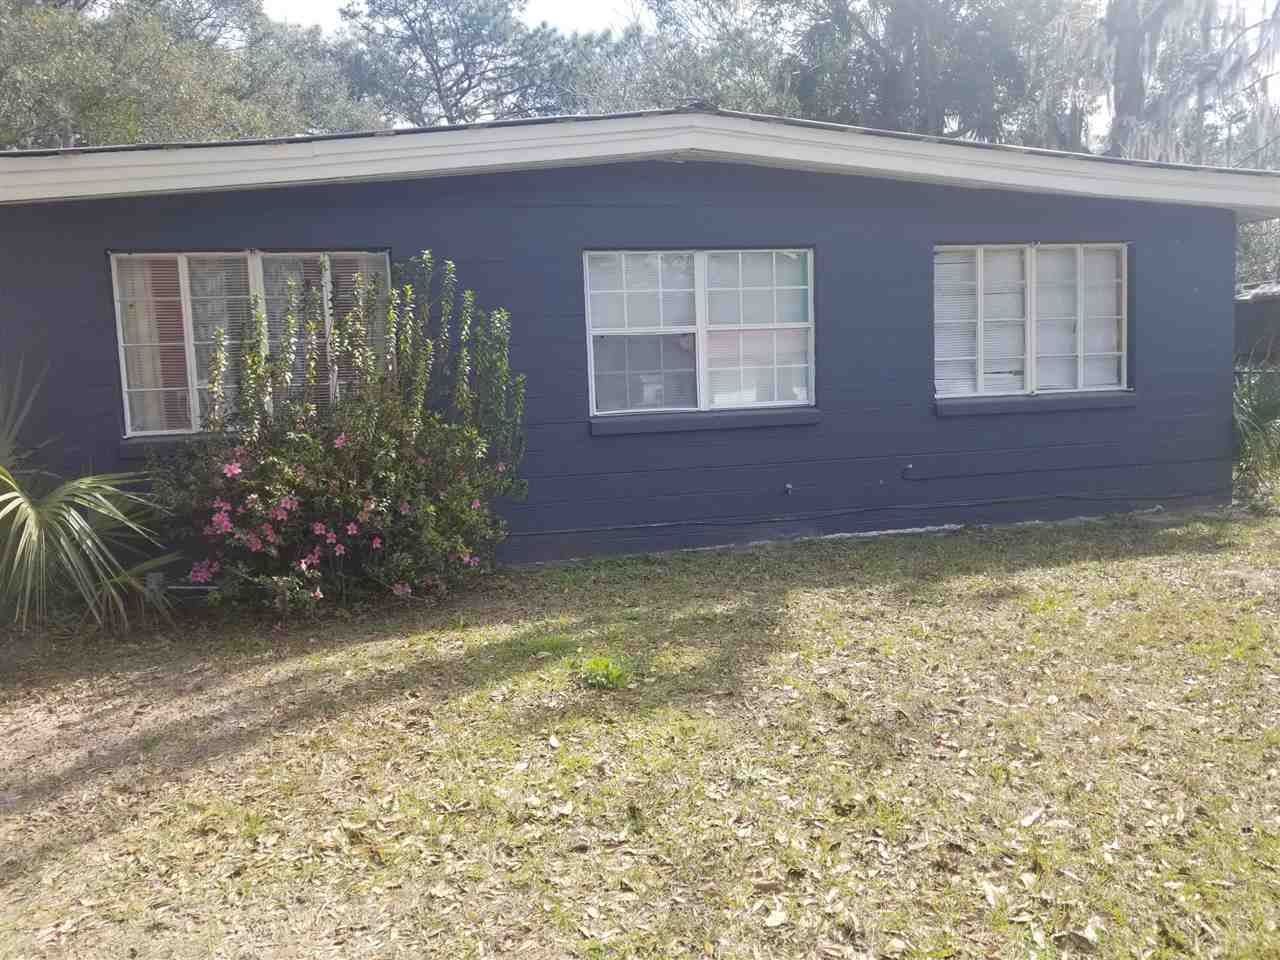 210 SUSAN Street, Perry, FL 32348 - MLS#: 328952